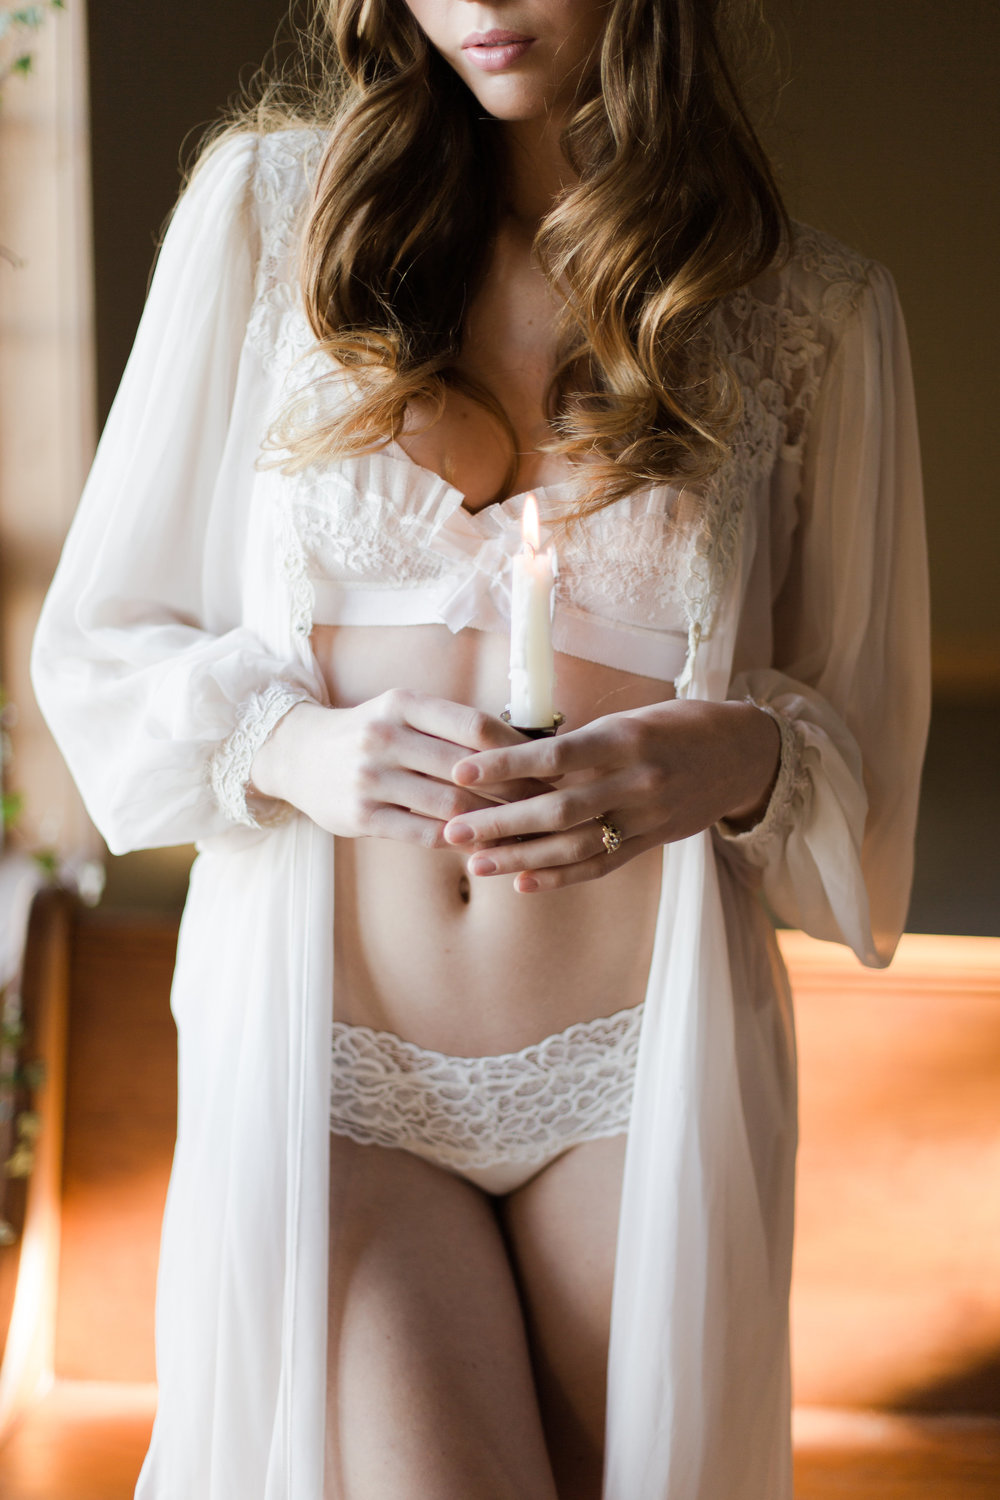 jennifer-munoz,boise-wedding-photographer,boise-boudoir-photographer,still-water-hollow-55.jpg